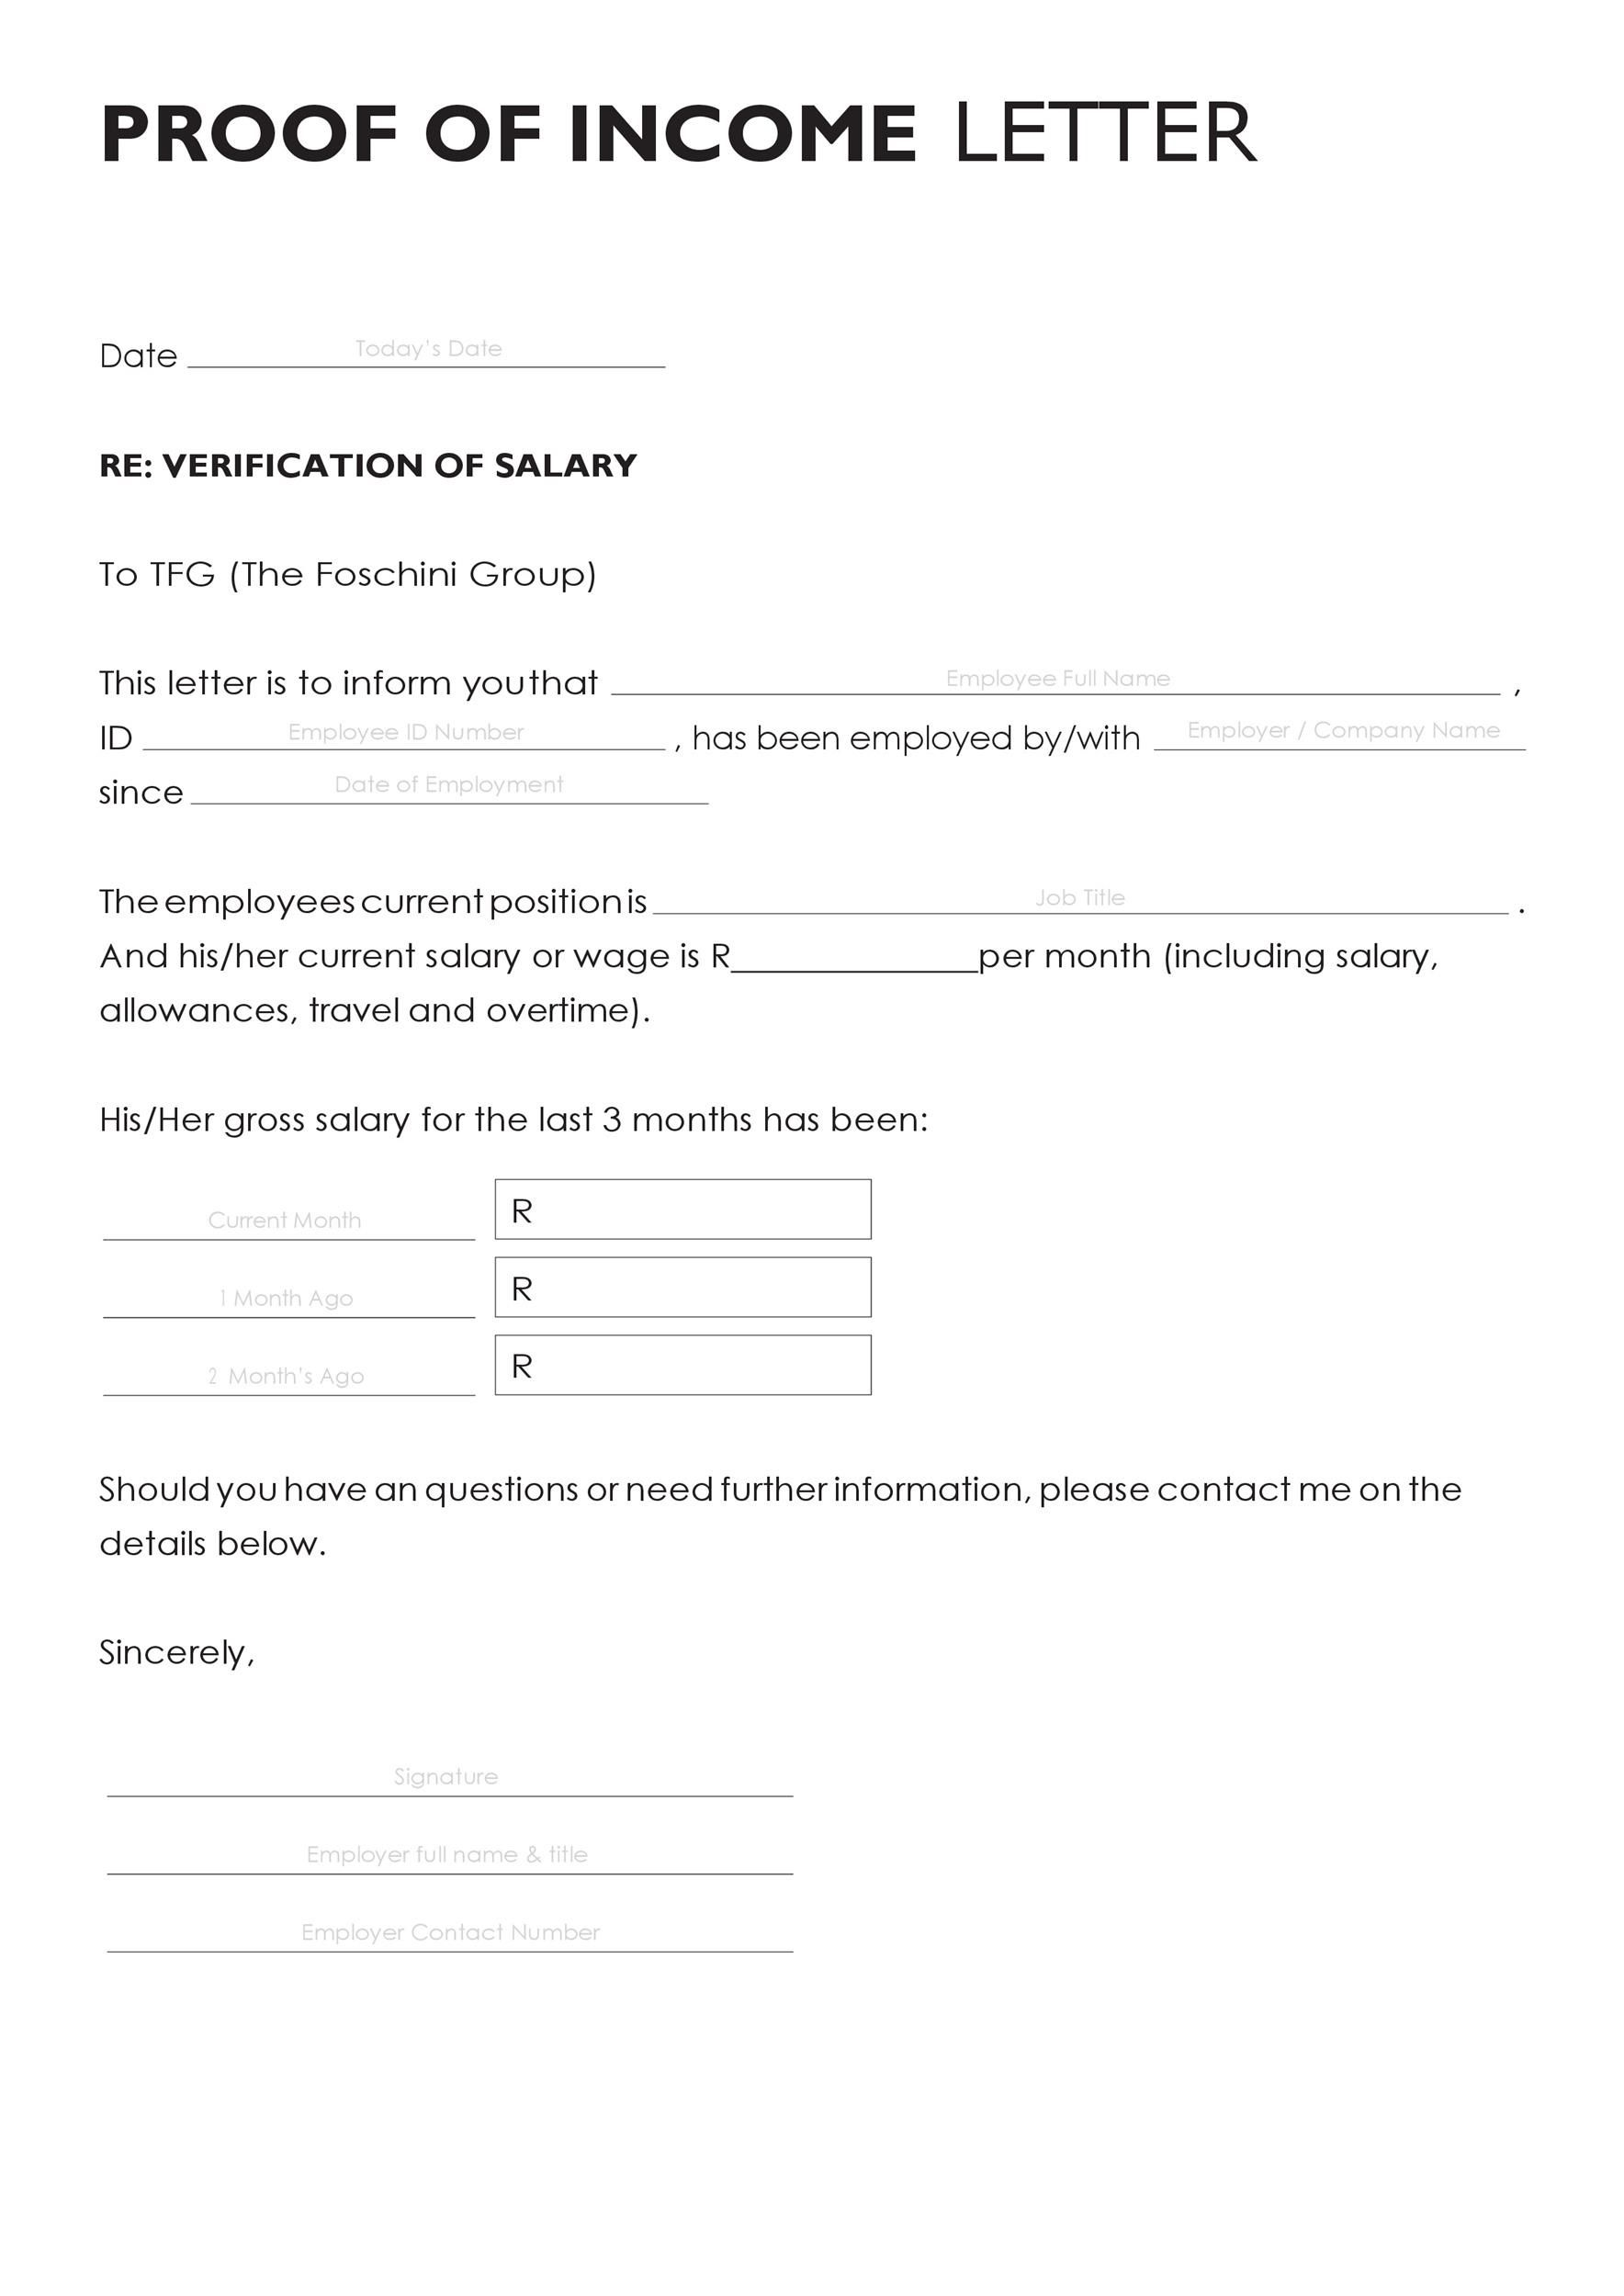 003 Archaicawful Free Income Verification Form Template High Def Full